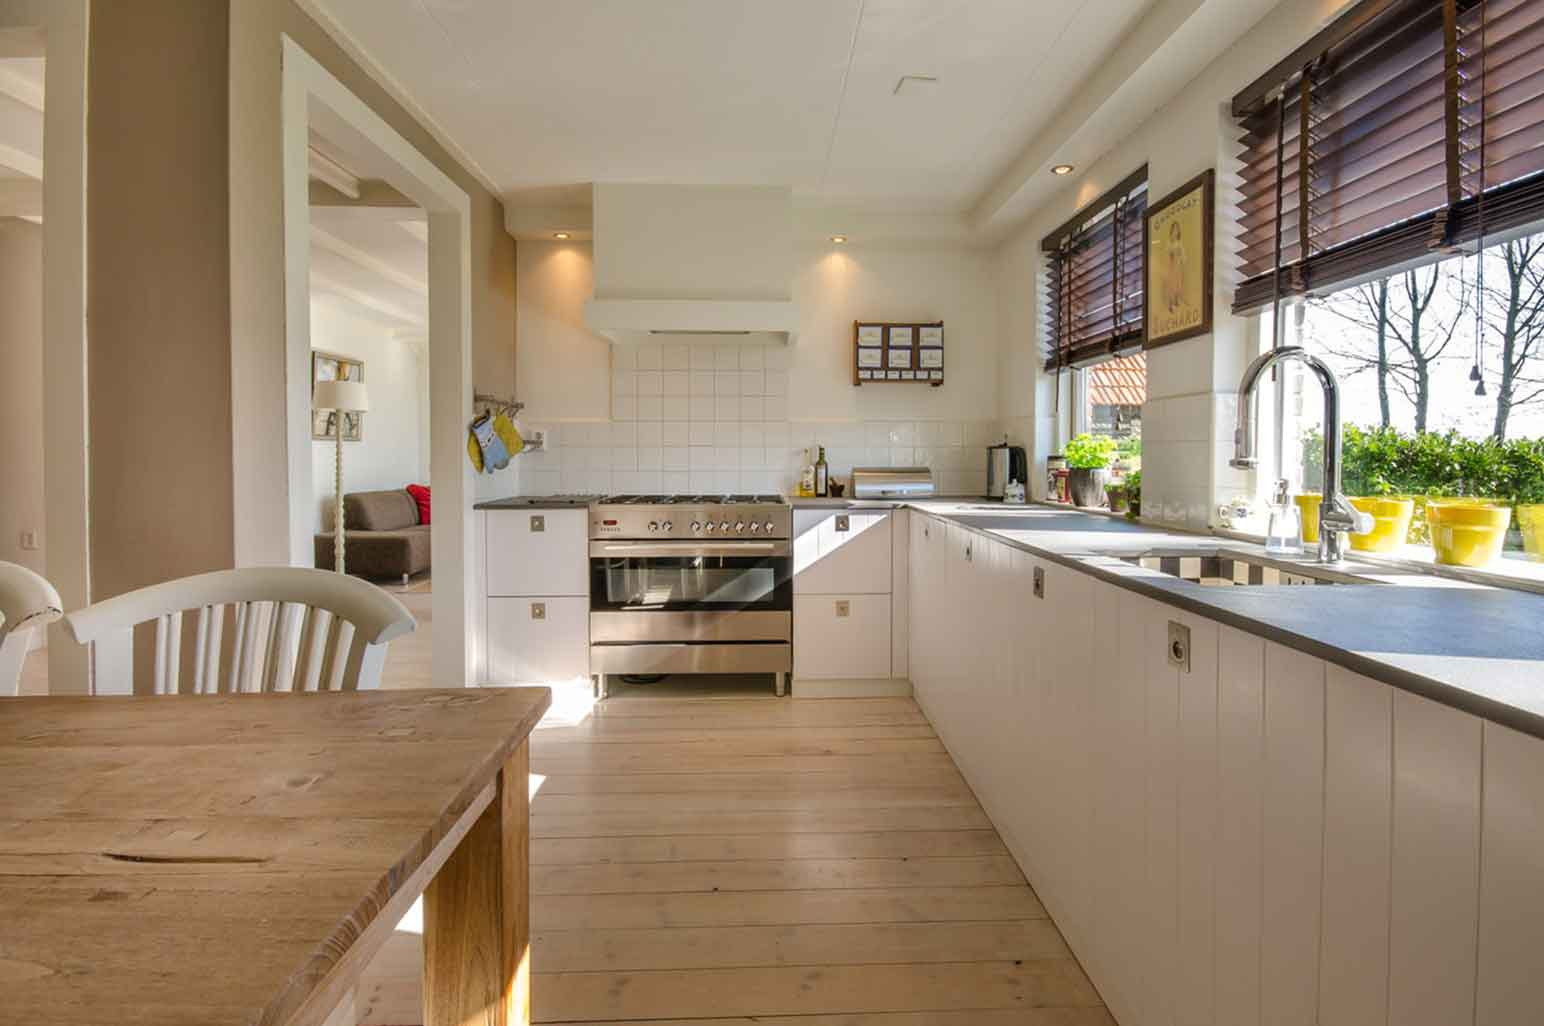 Considering Buying a Family Home? Here's Some Key Information